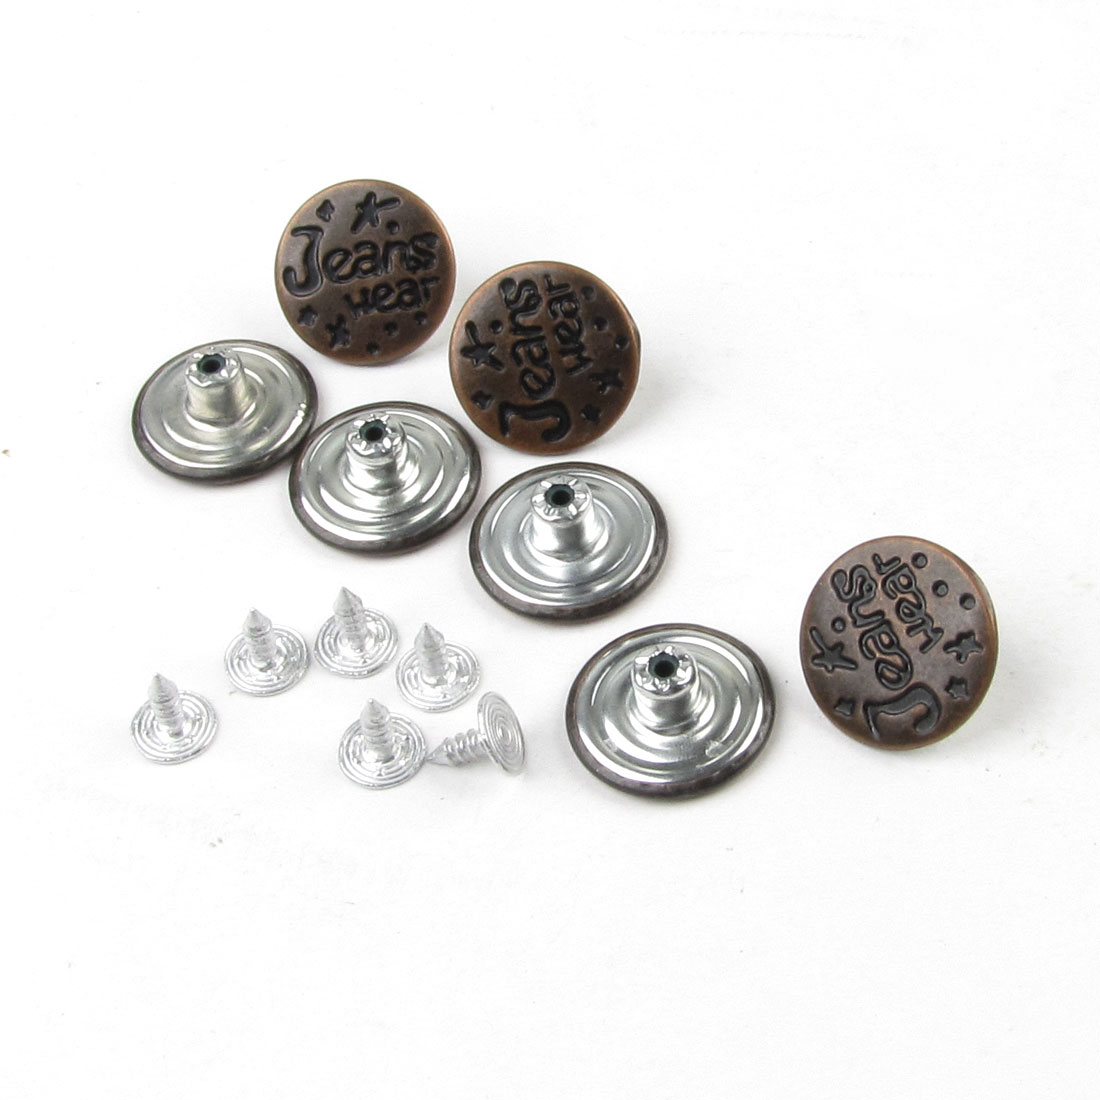 Repair Parts Brown Metal Carved Letters Jeans Buttons 7 Pcs